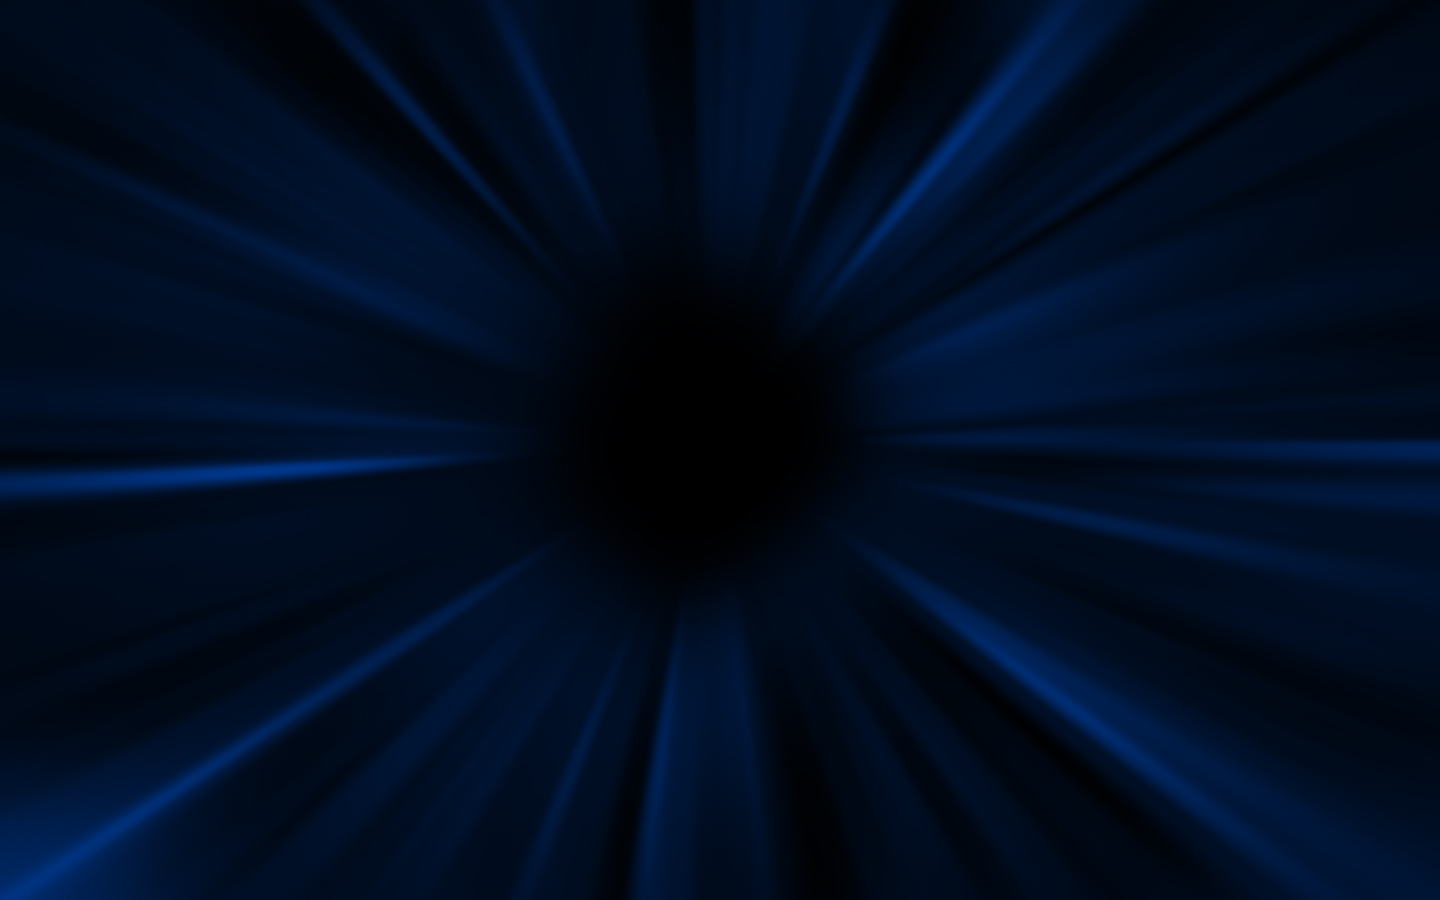 Plain Dark Blue Wallpaper wallpaper wallpaper hd 1440x900